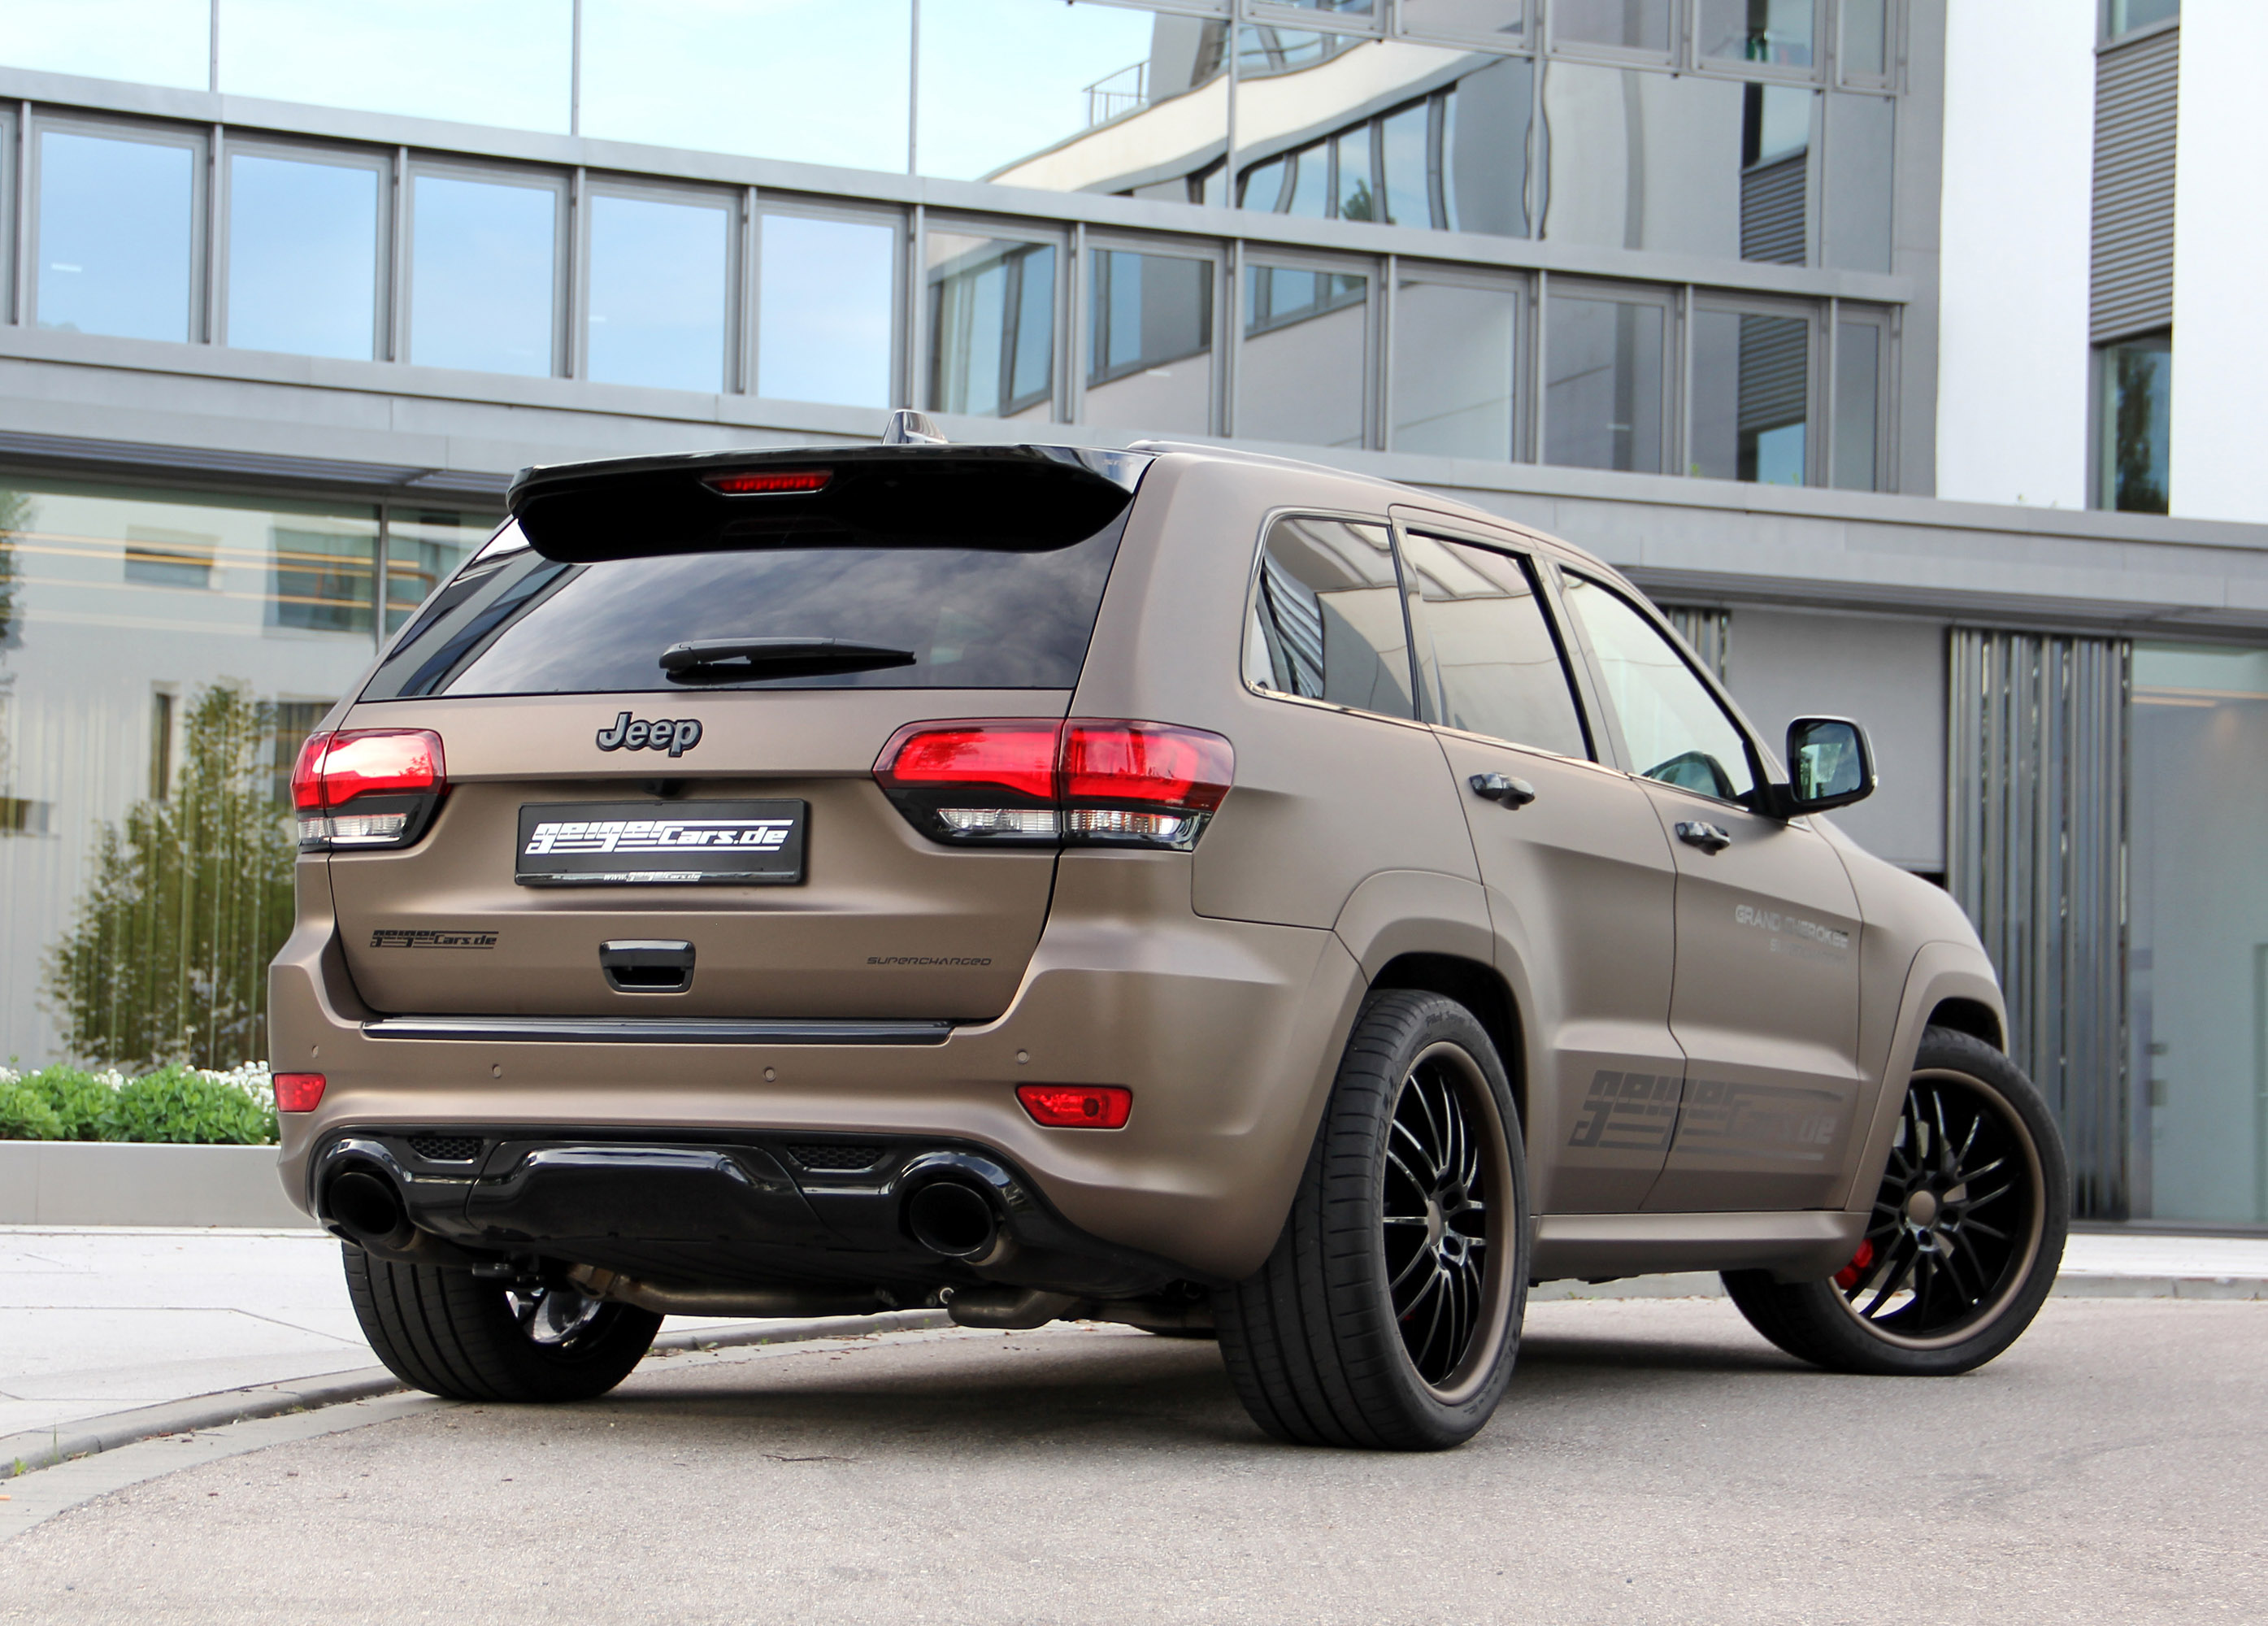 release more powerful jeep grand cherokee srt. Black Bedroom Furniture Sets. Home Design Ideas